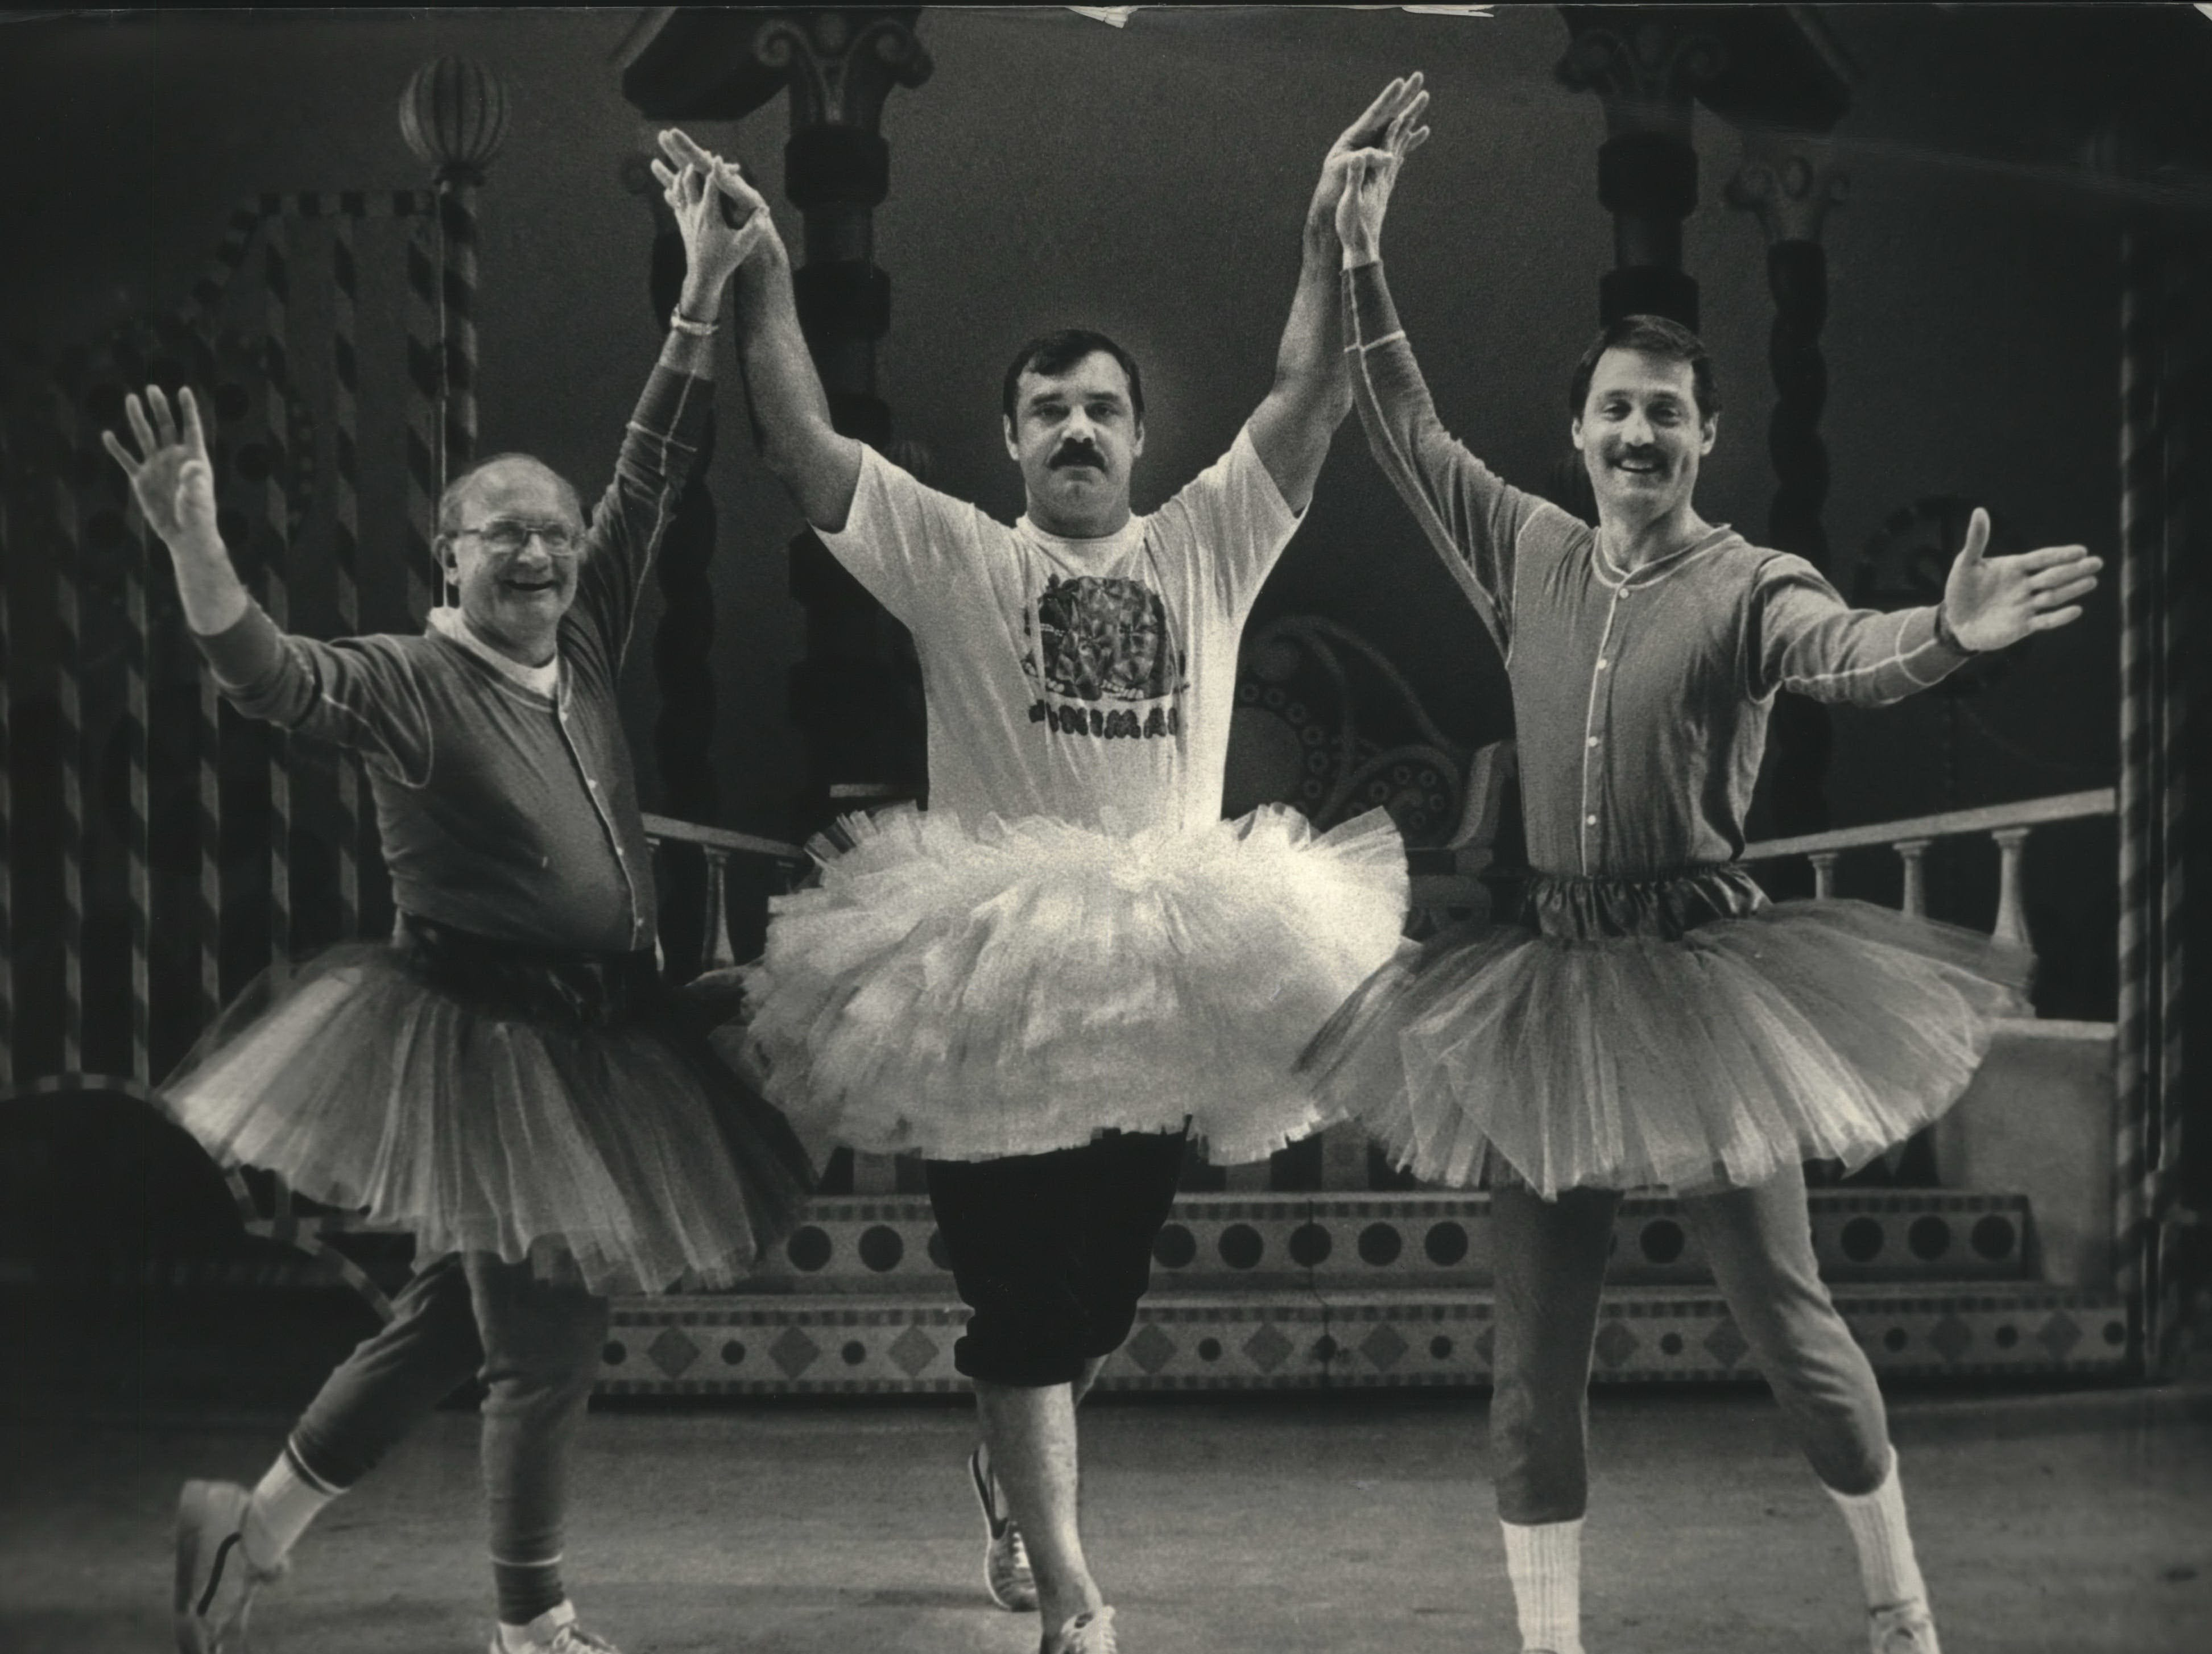 """It was a """"Nutty Nutcracker"""" Thursday (from left) County Board CHairman F. Thomas Ament, former football player Larry Csonka and Tom Sutton of WISN-TV practiced for the third New Year's Eve spoof of """"The Nutcracker"""" ballet at the PAC. Pennsylvania and Milwaukee Ballet."""